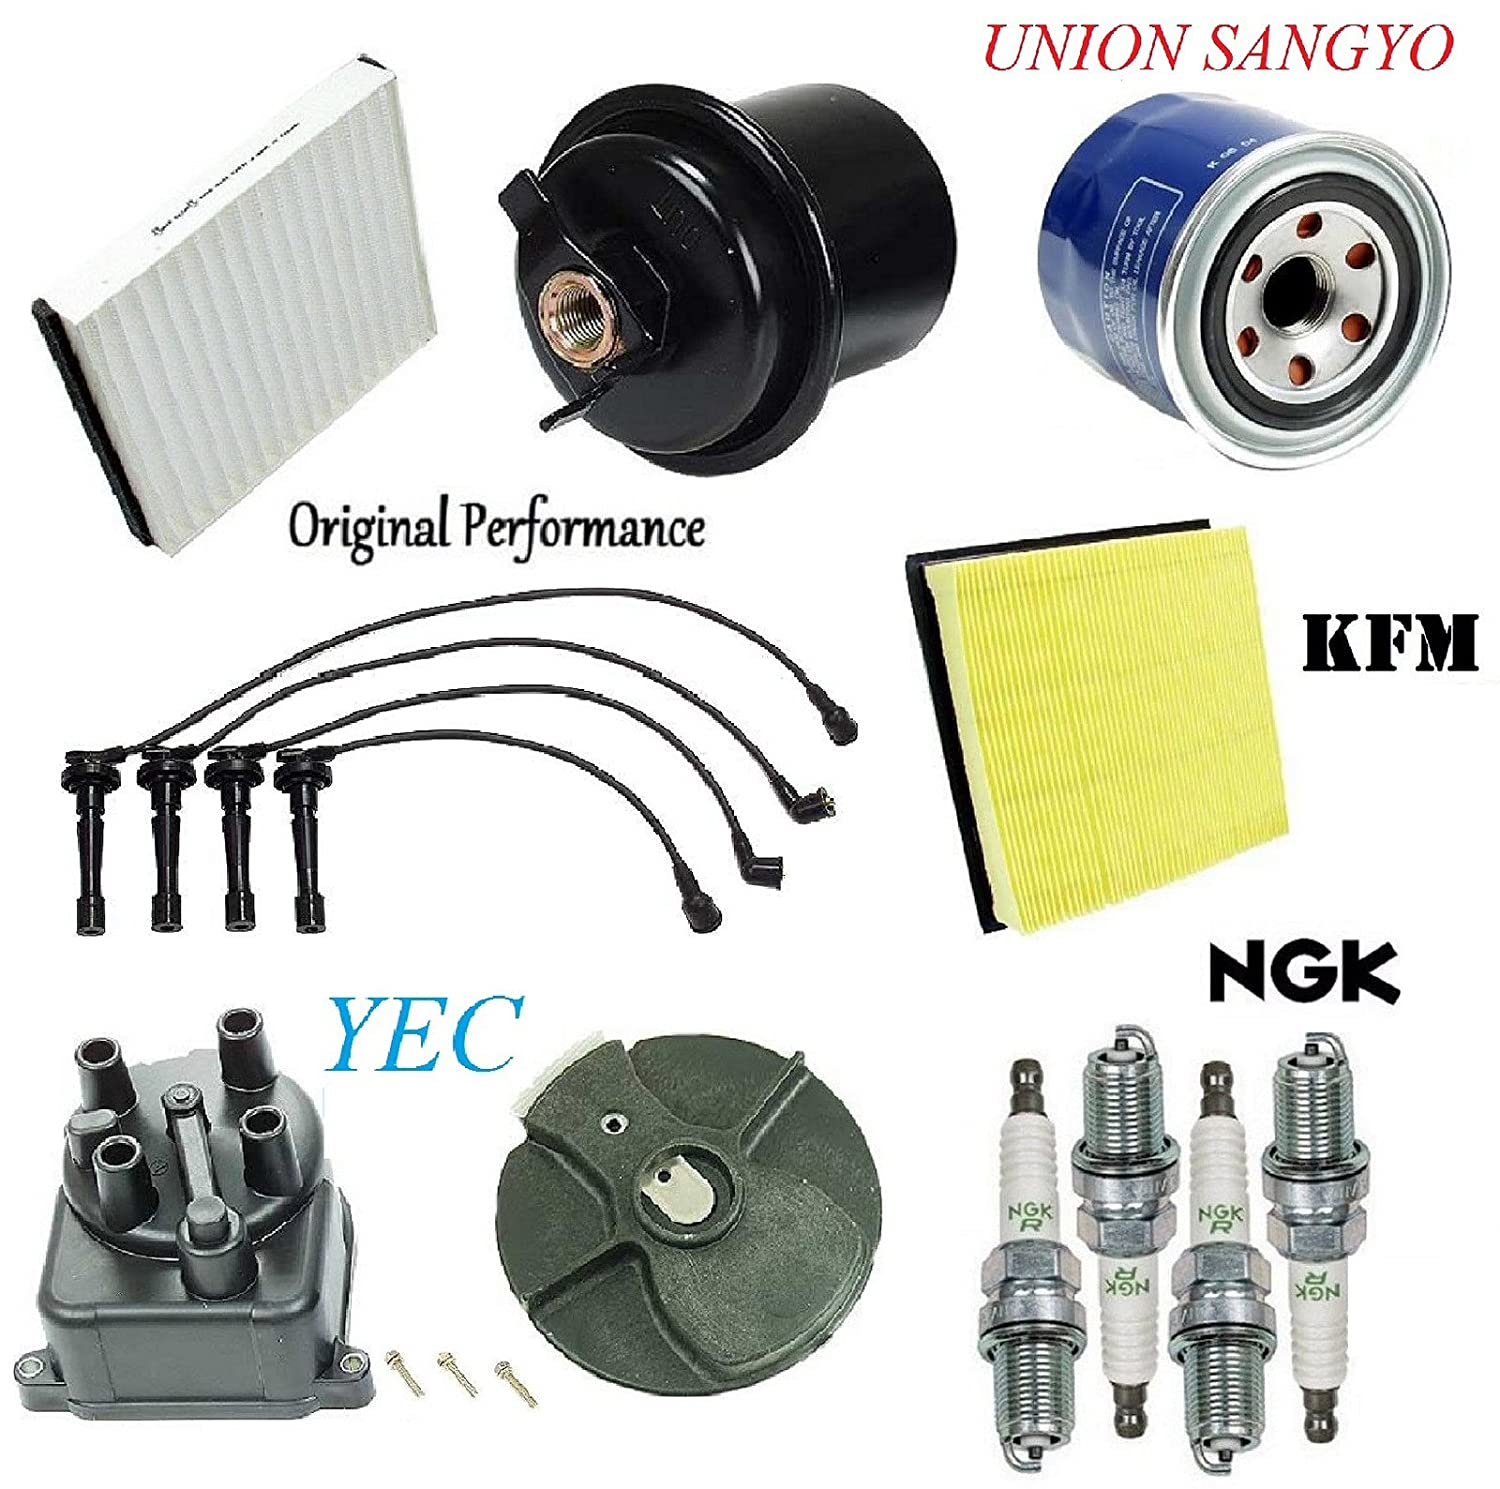 For Honda Civic 96-00 Tune Up Kit Wire Set NGK Plugs Cap Rotor Air Fuel Filters